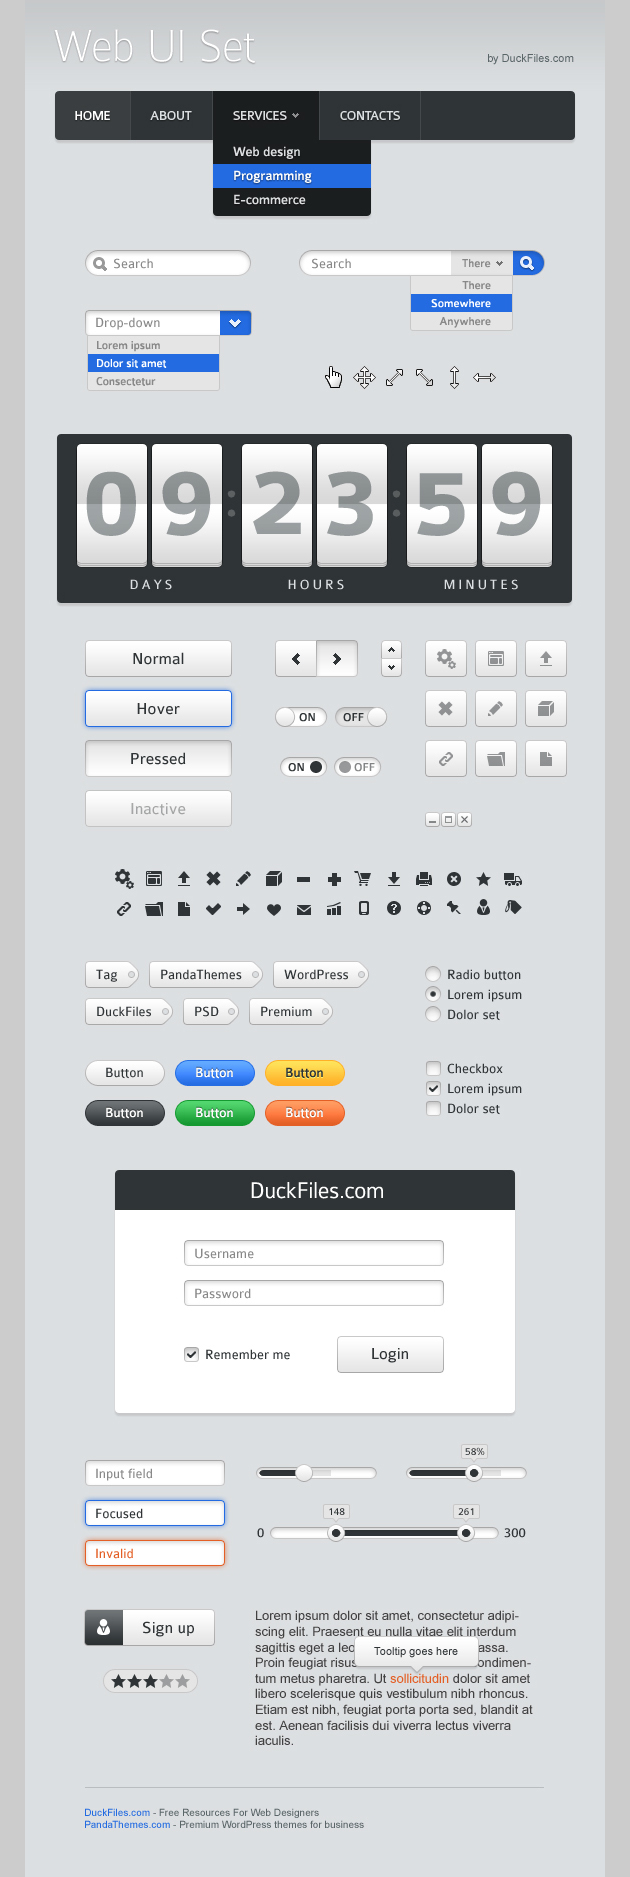 70+ user interface elements (Free PSD) #webdesign #design #designer #inspiration #web #ui #userinterface #interface #user #download #free #downloads